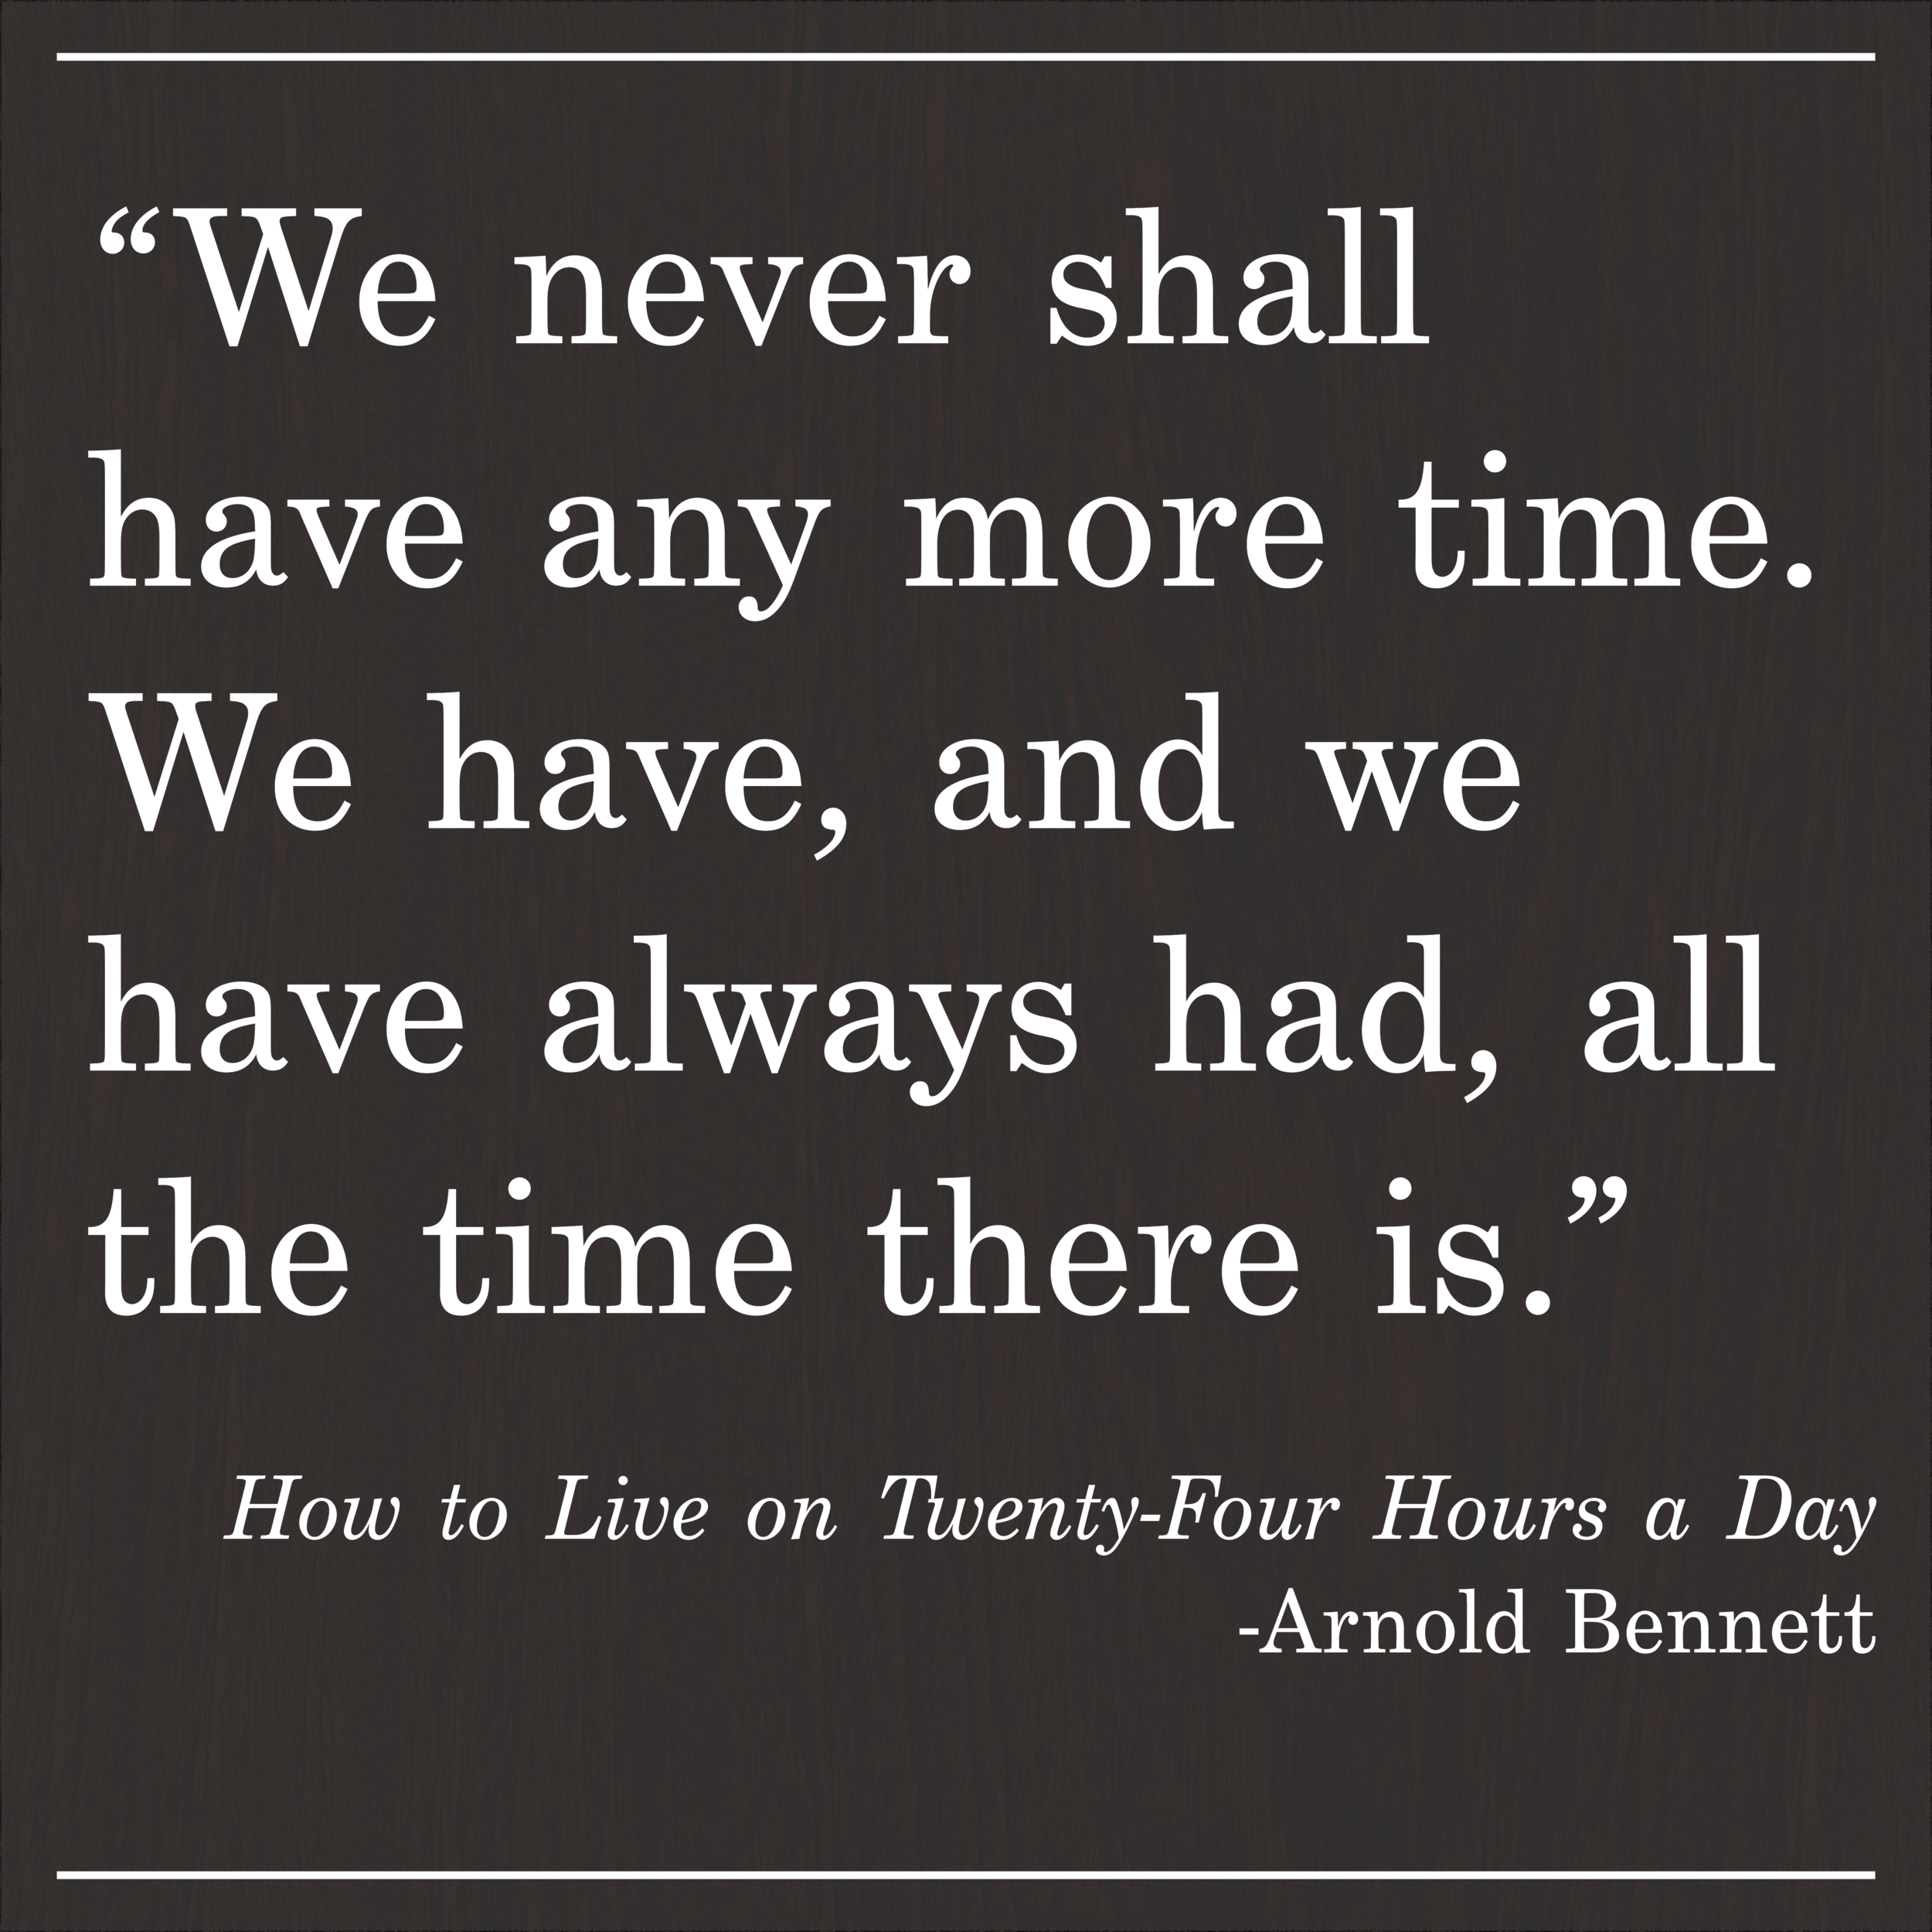 Daily Quote How to Live on Twenty-Four Hours a Day by Arnold Bennett